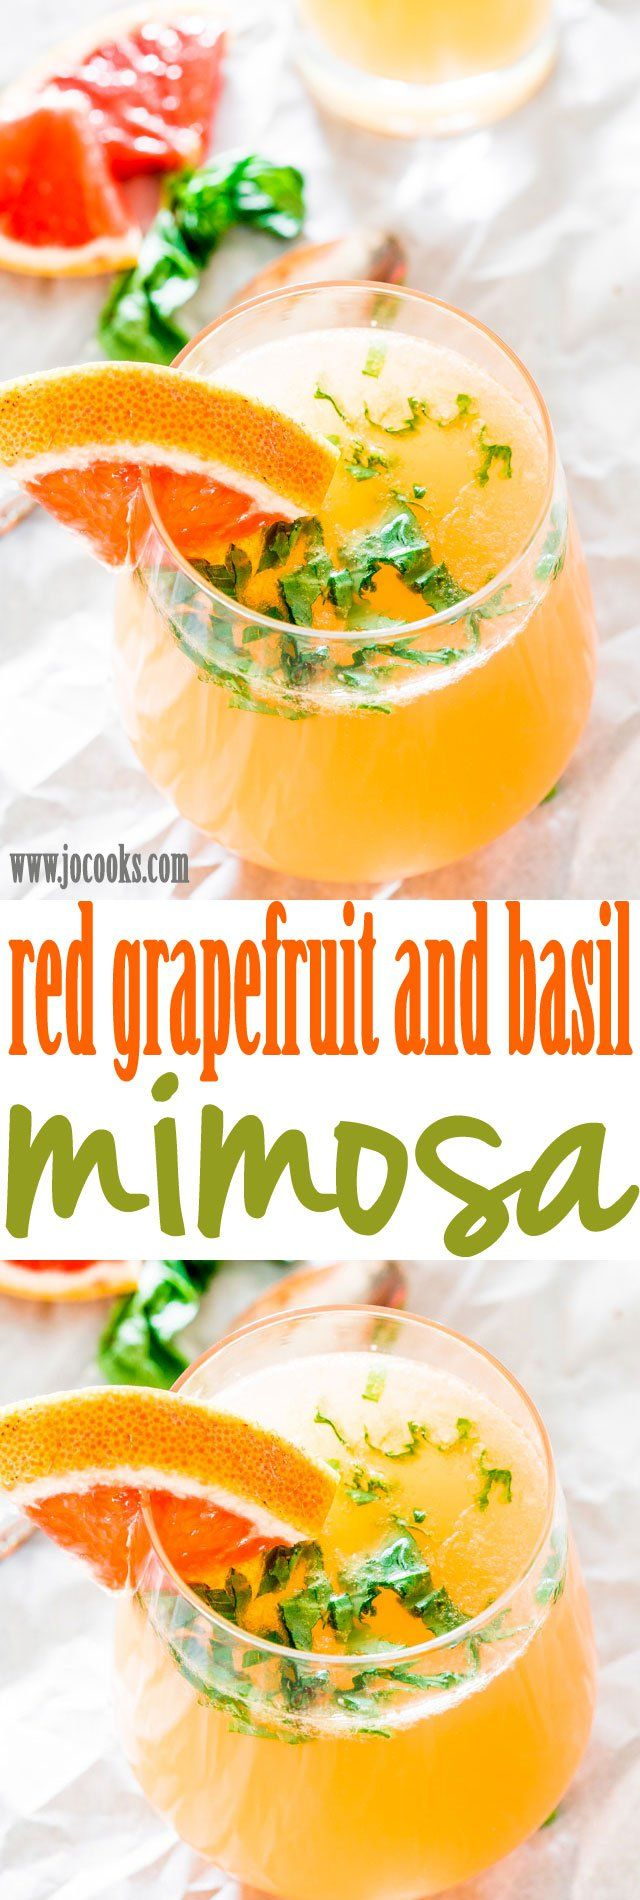 Red Grapefruit and Basil Mimosas - these yummy and perfect mimosas are made with just 4 ingredients! Perfect for your next brunch or cocktail party.